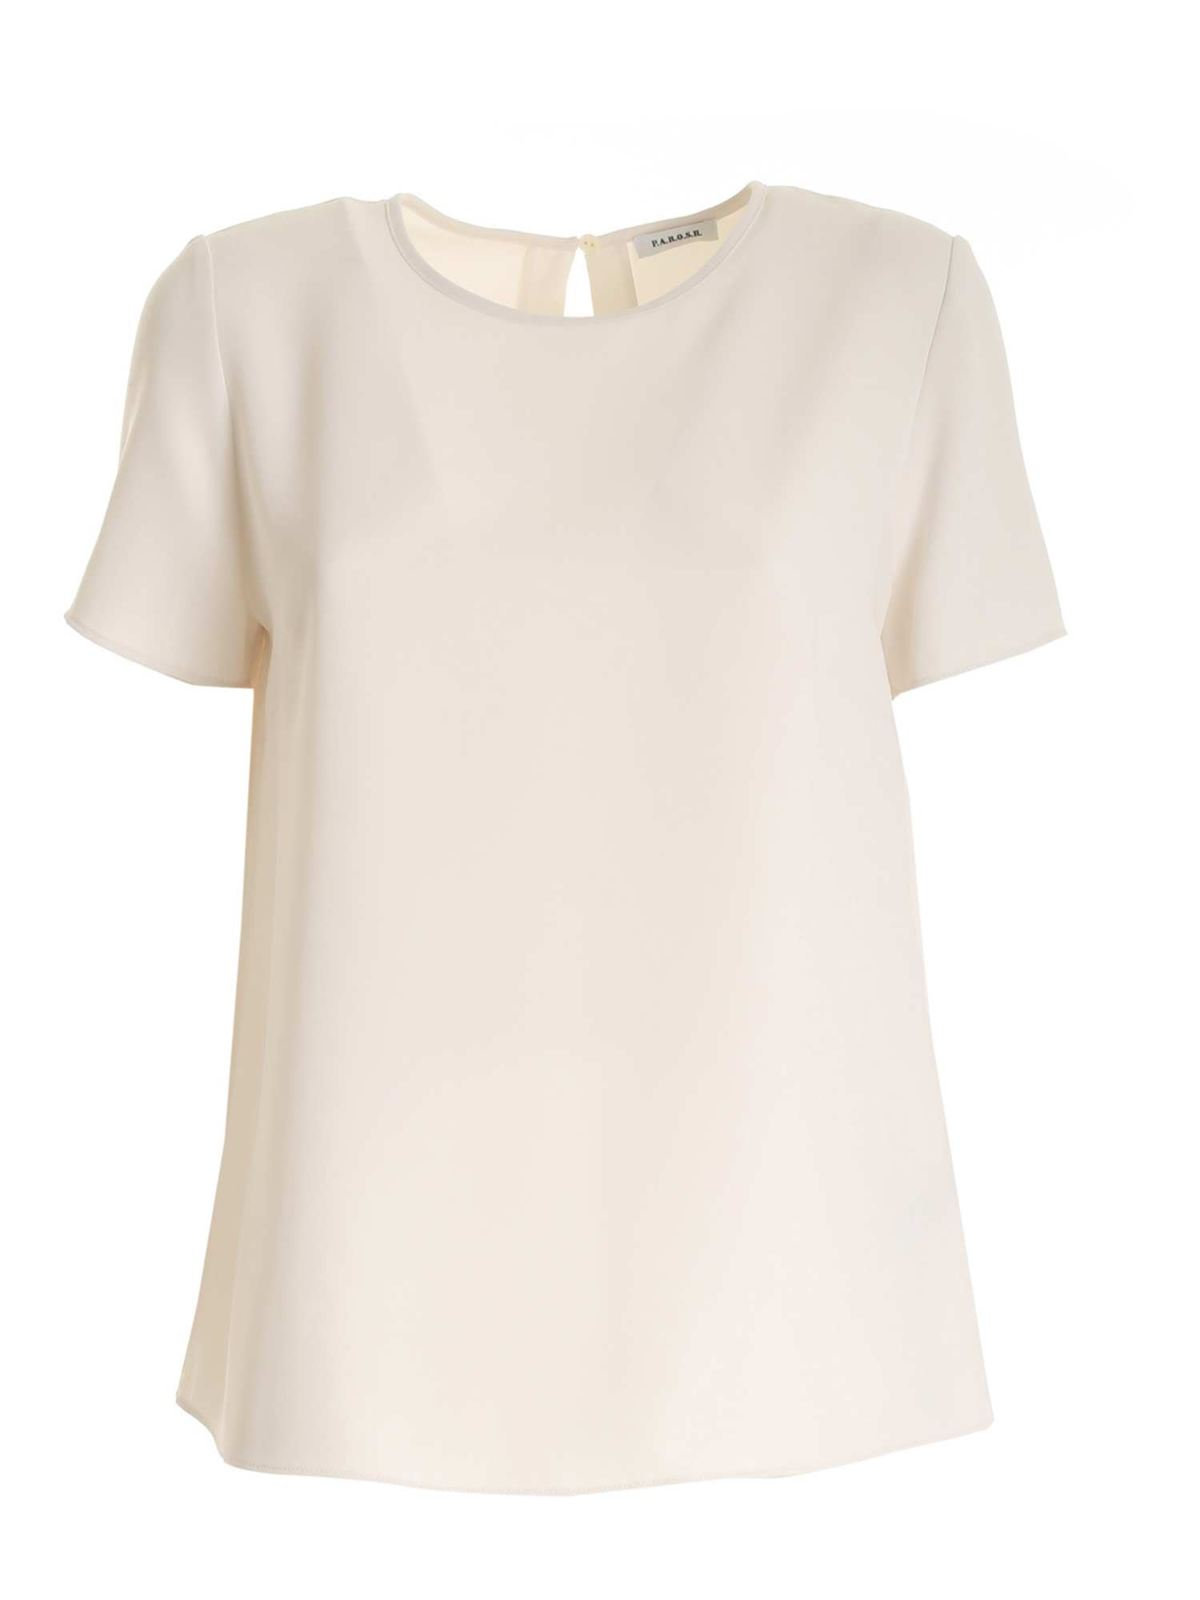 P.a.r.o.s.h. LOOSE FIT BLOUSE IN IVORY CADY